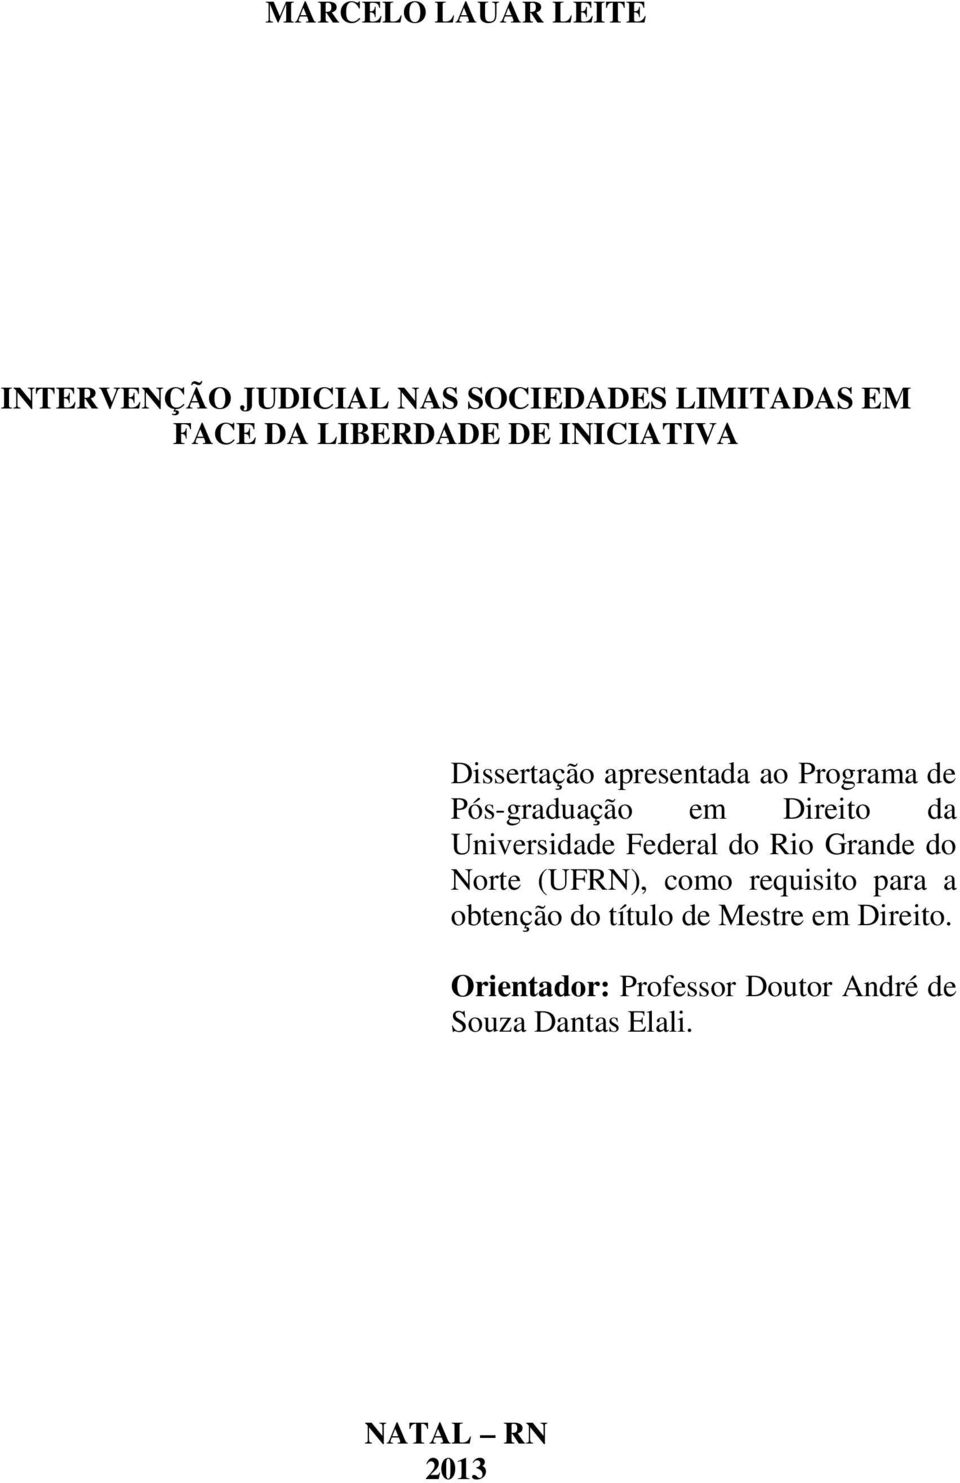 Universidade Federal do Rio Grande do Norte (UFRN), como requisito para a obtenção do